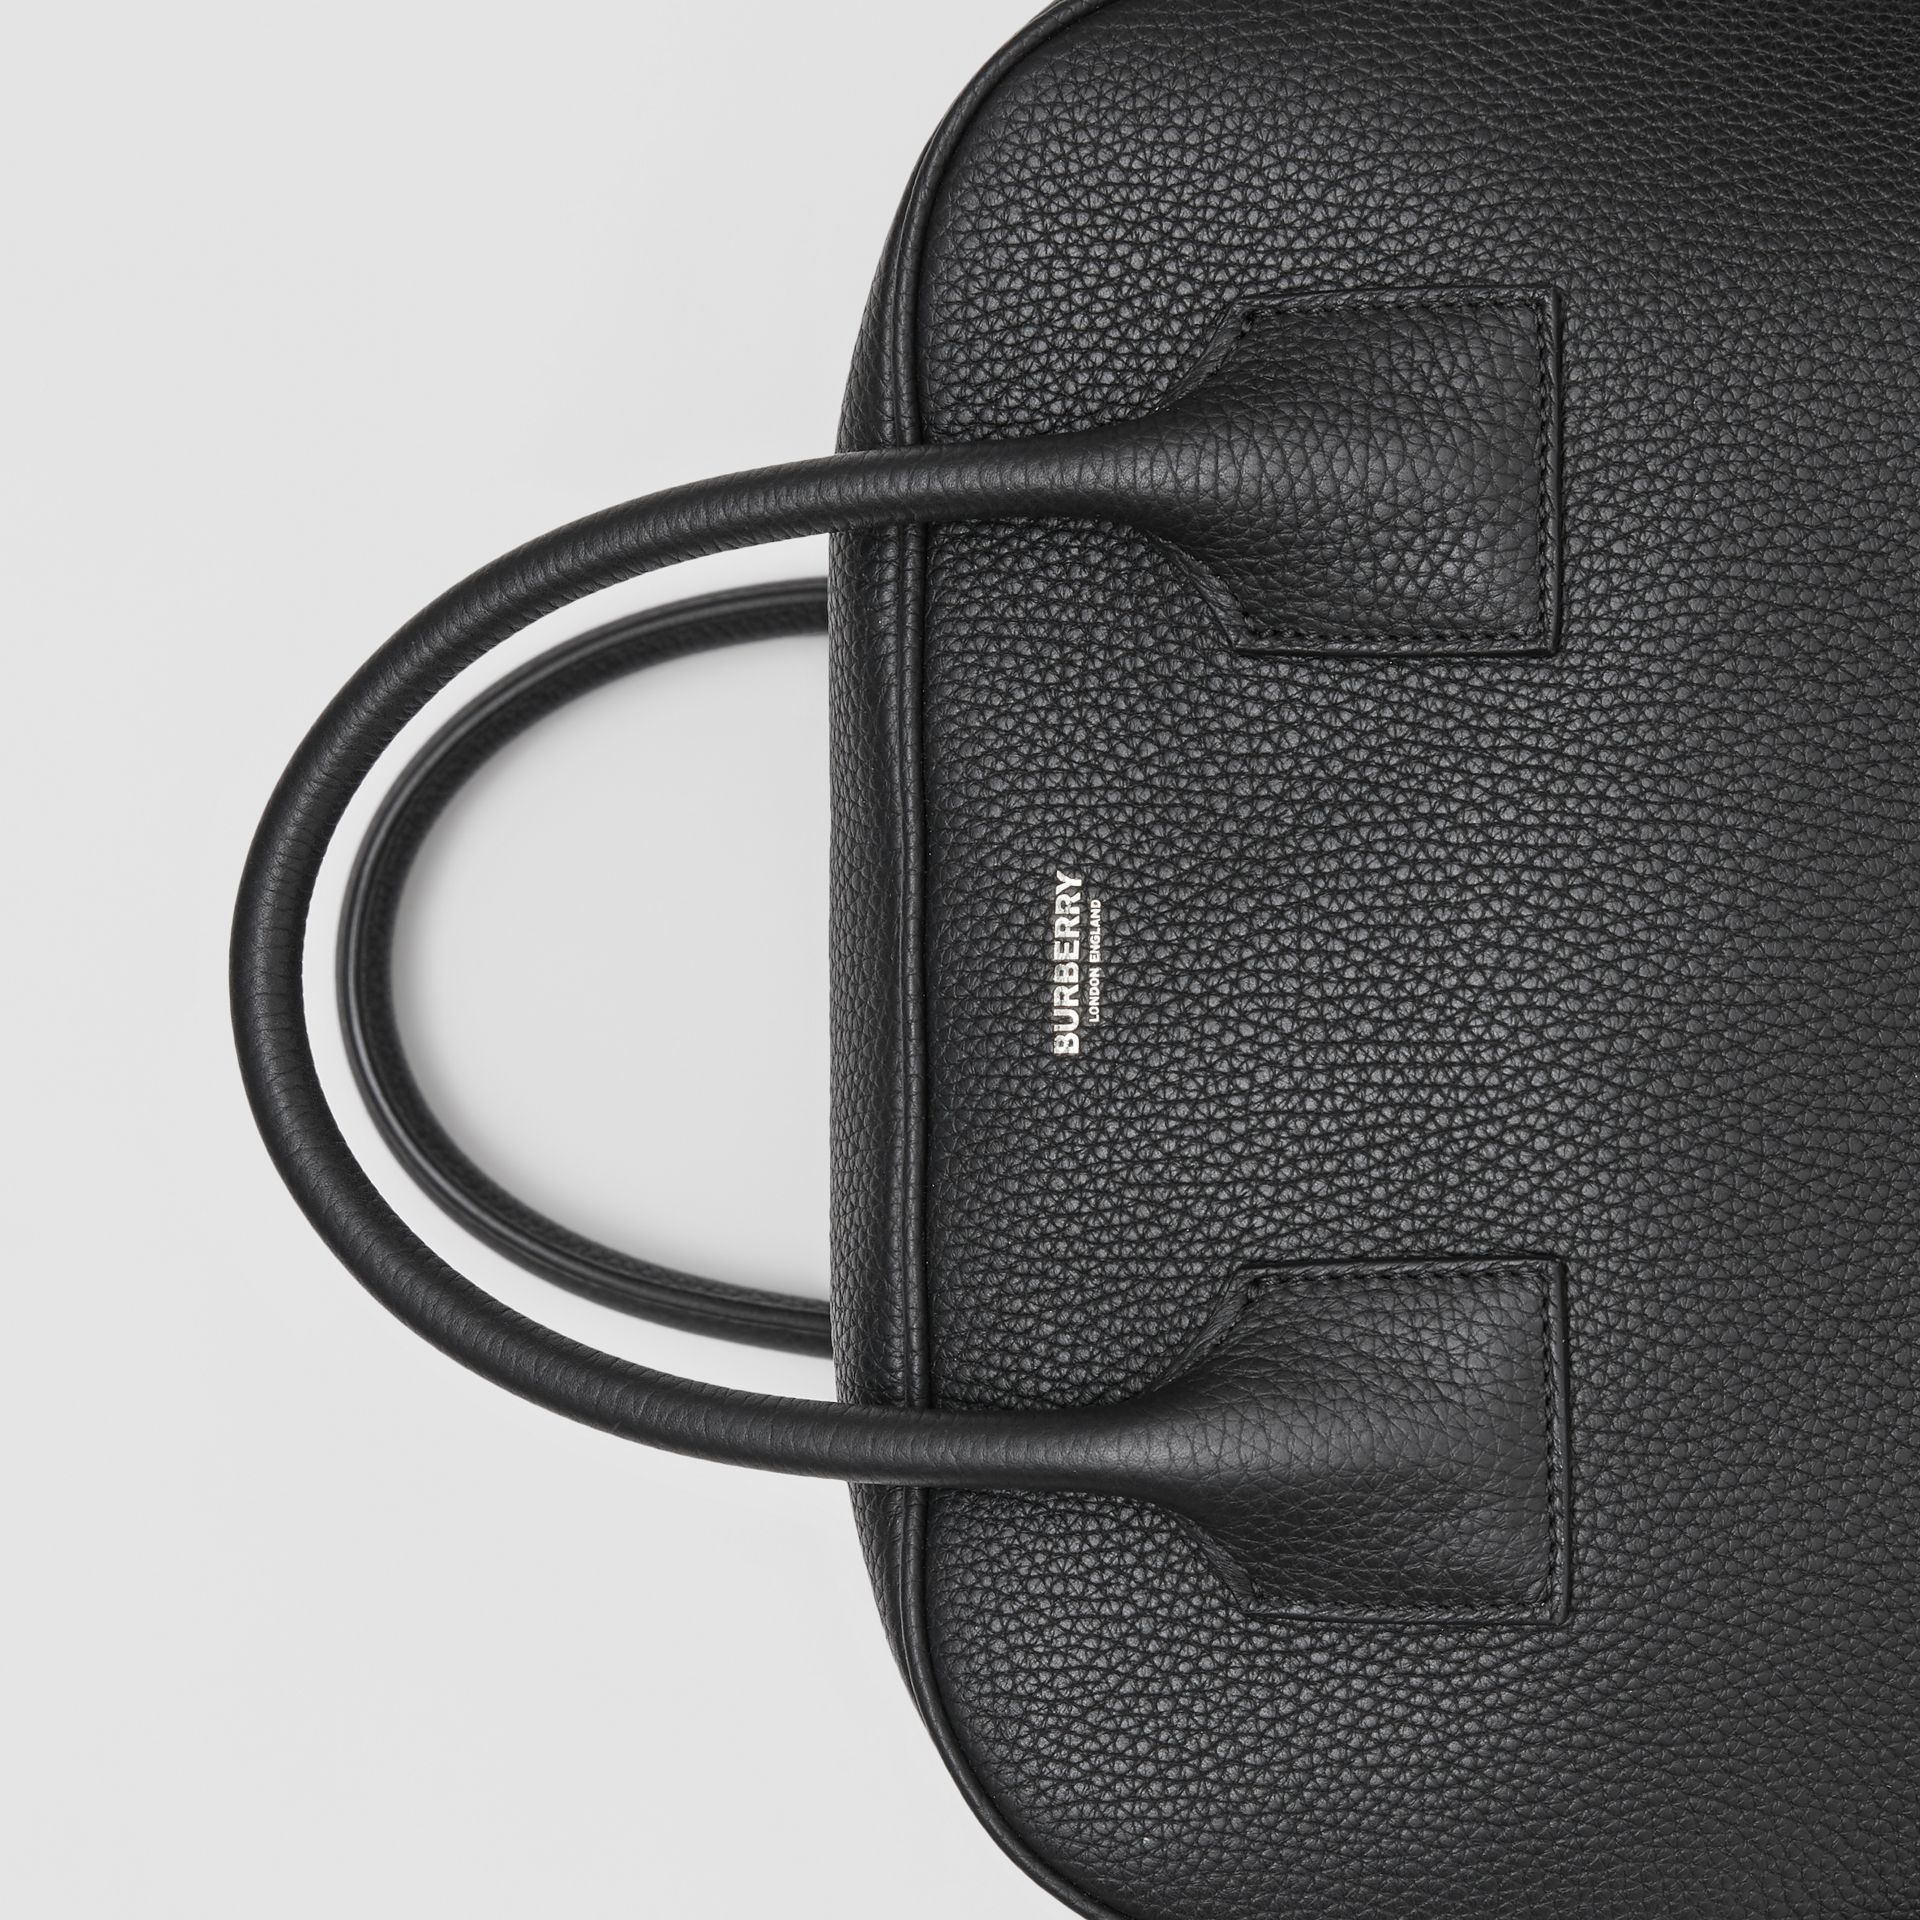 Medium Leather Cube Bag in Black - Women | Burberry Australia - gallery image 1